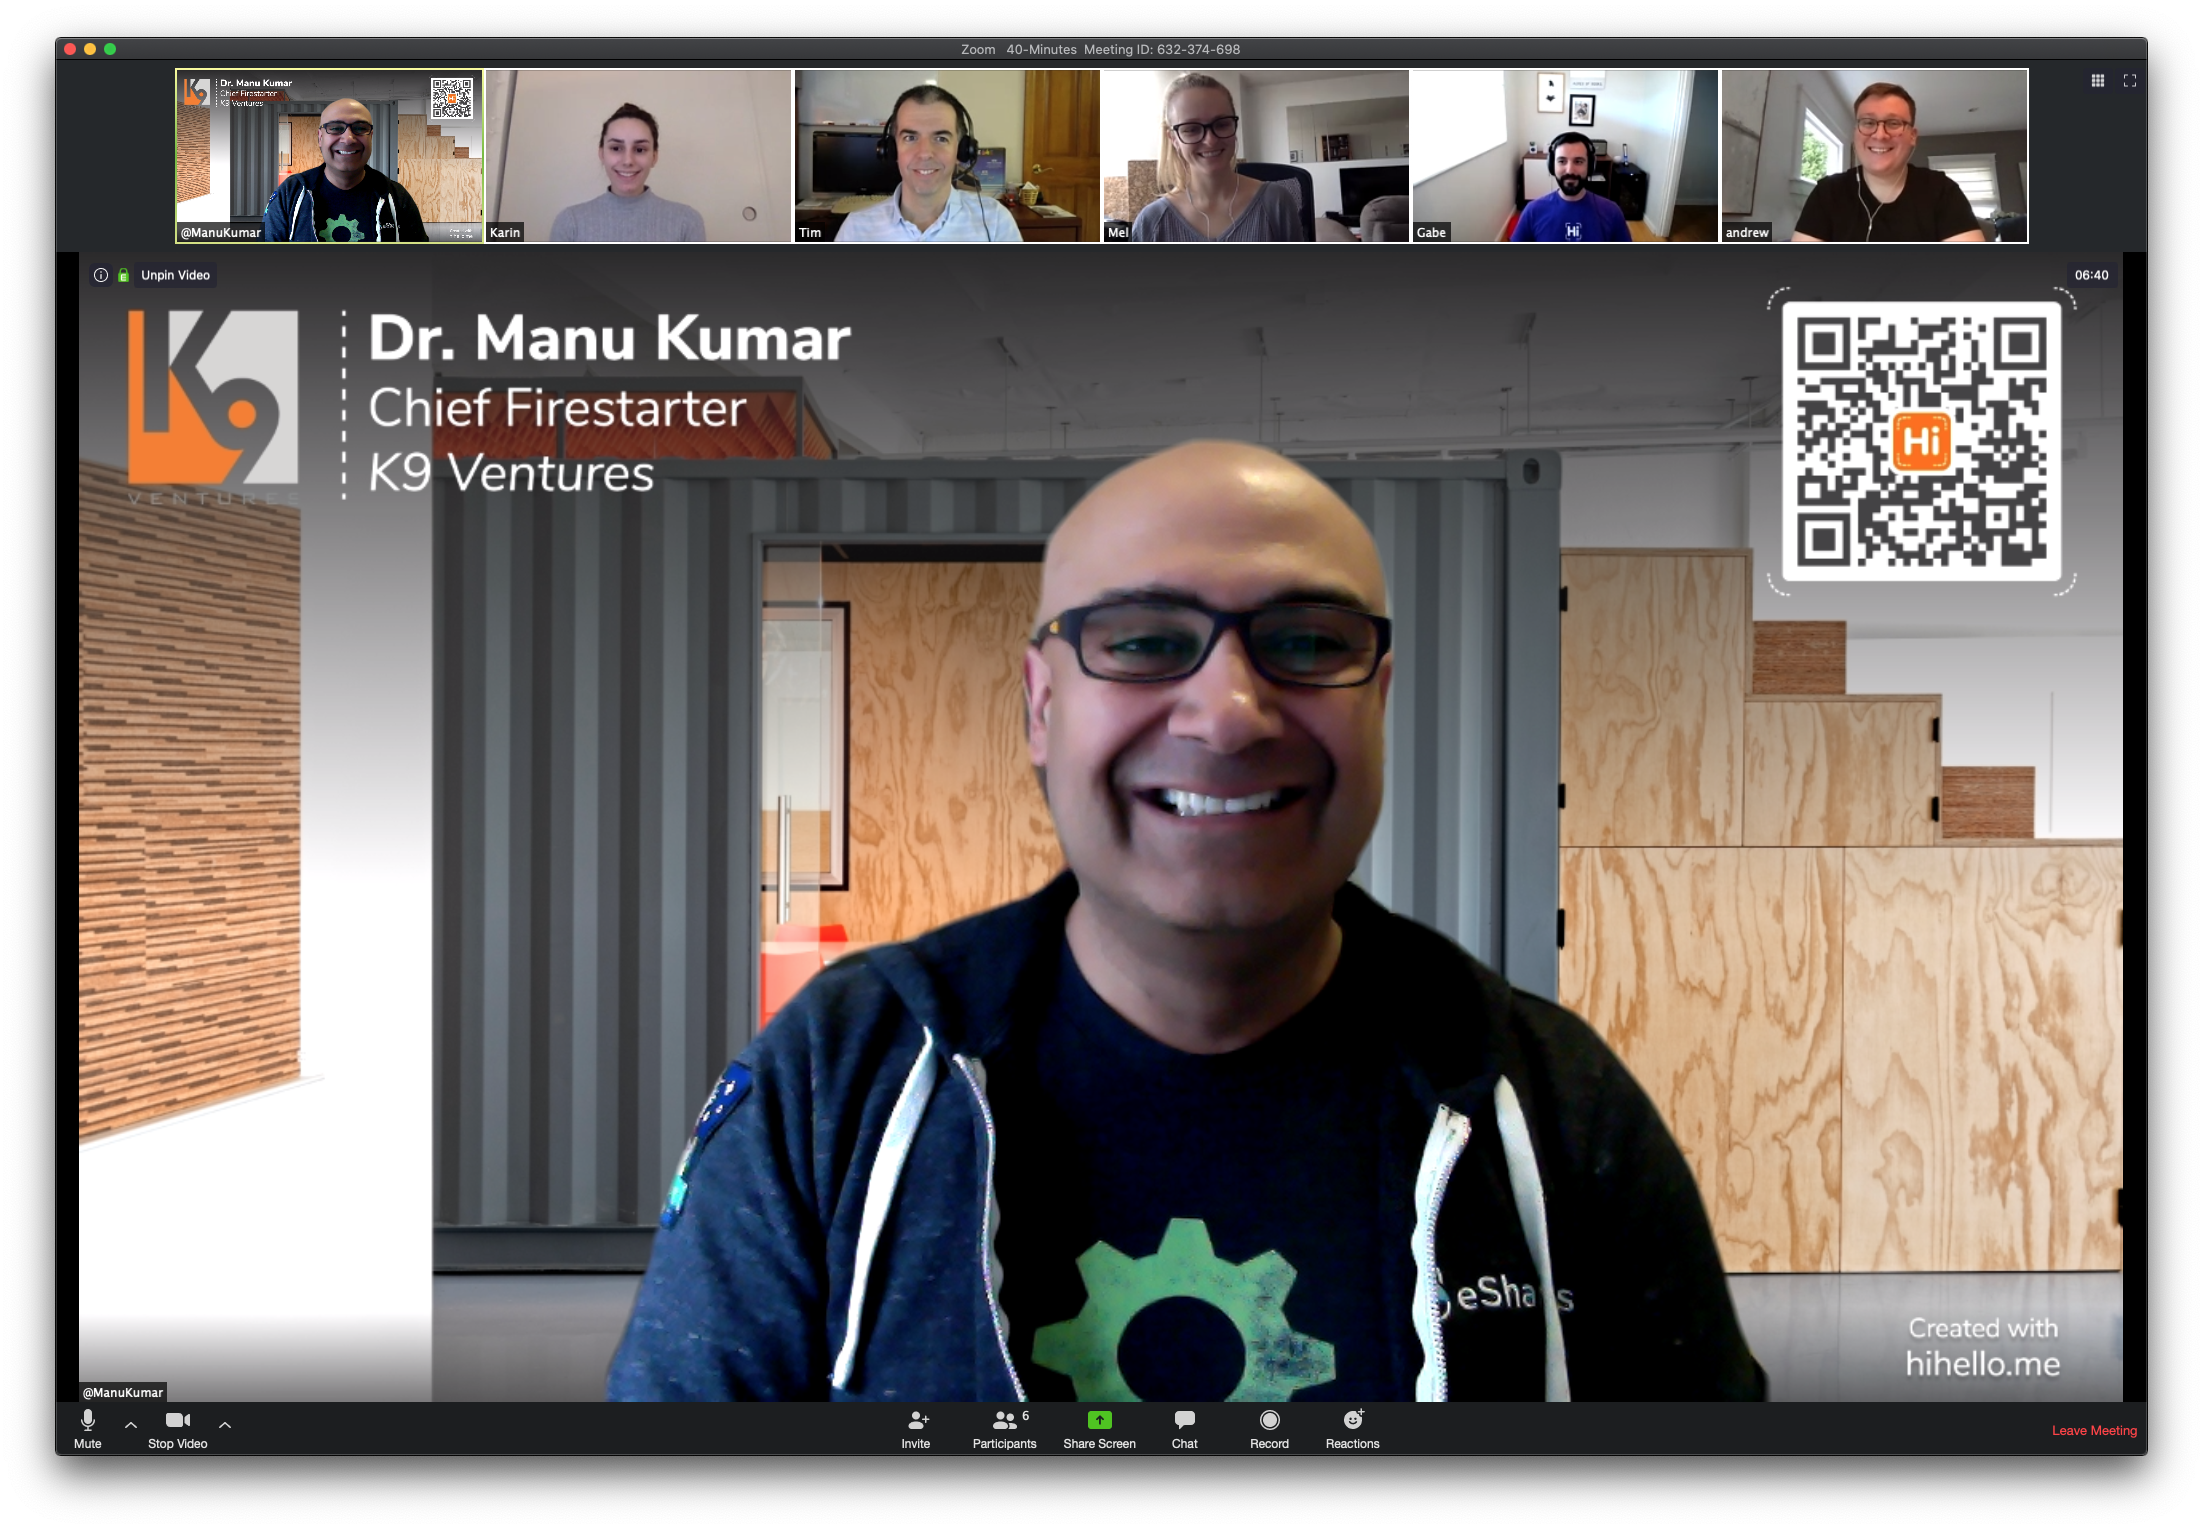 HiHello's Co-founder and CEO, Manu Kumar, showing his HiHello virtual background during a video call.